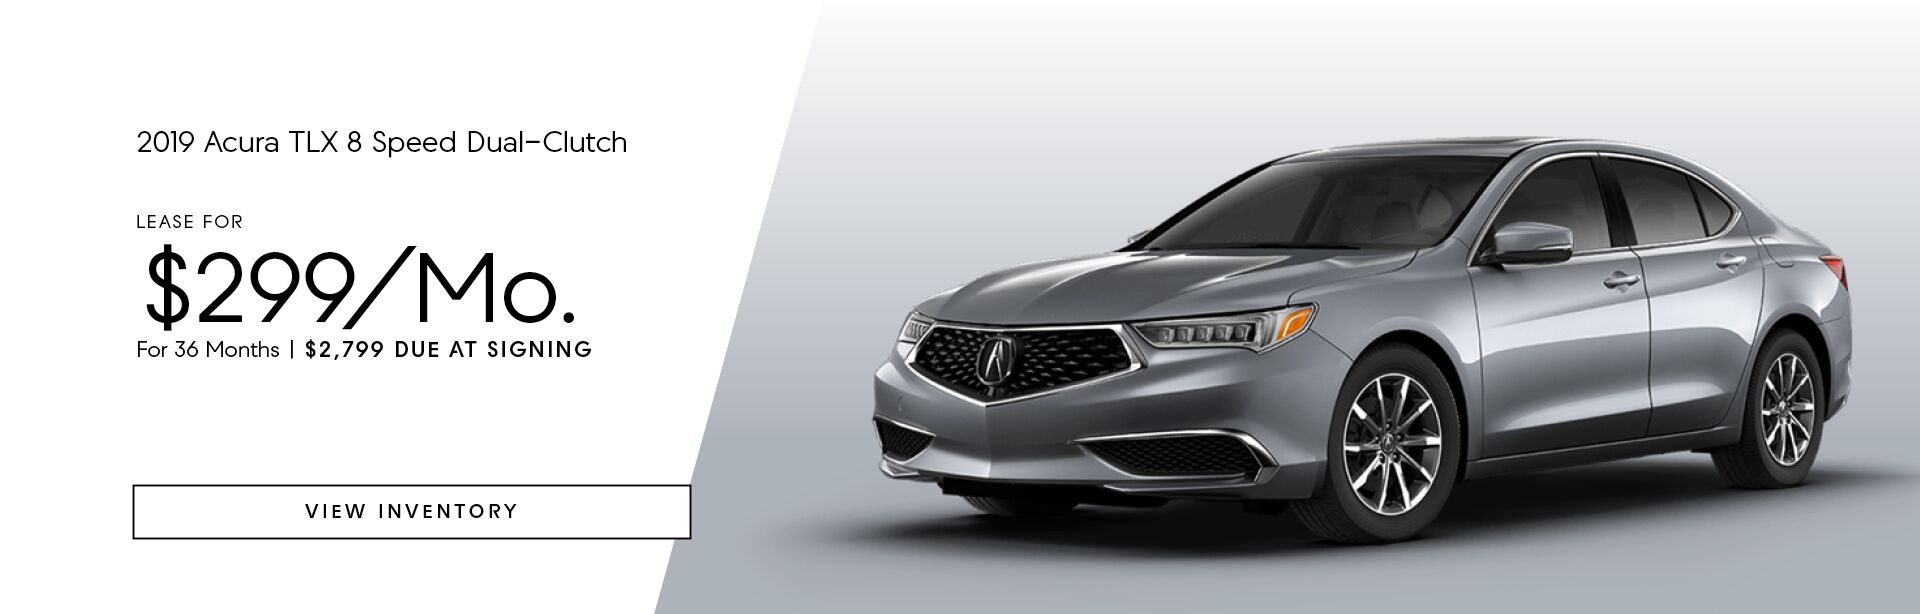 2019 Acura TLX 8 Speed Dual-Clutch